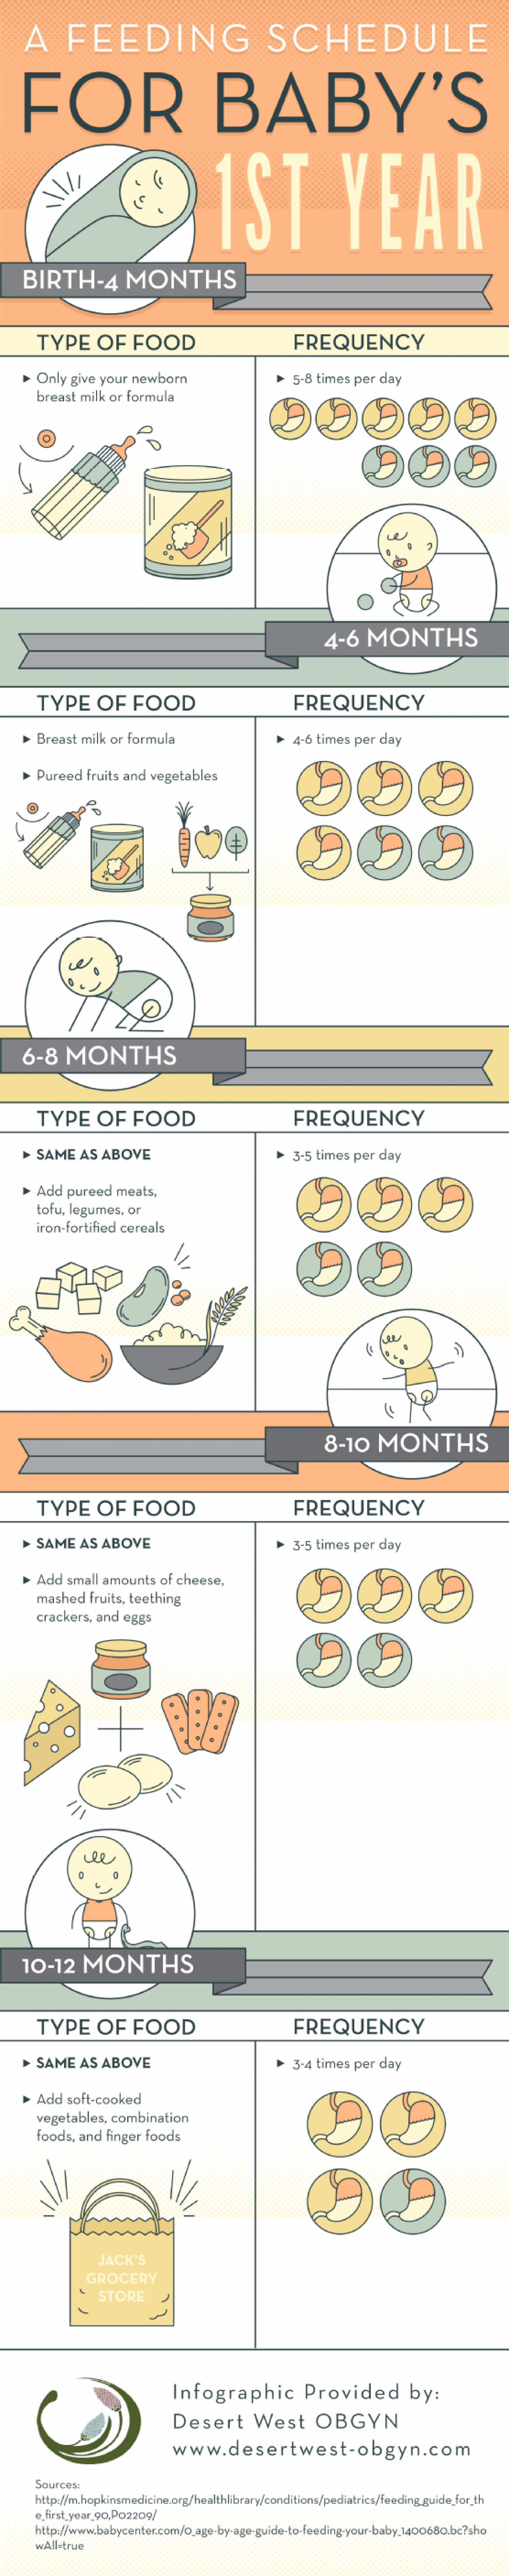 A Feeding Schedule for Baby's 1st Year